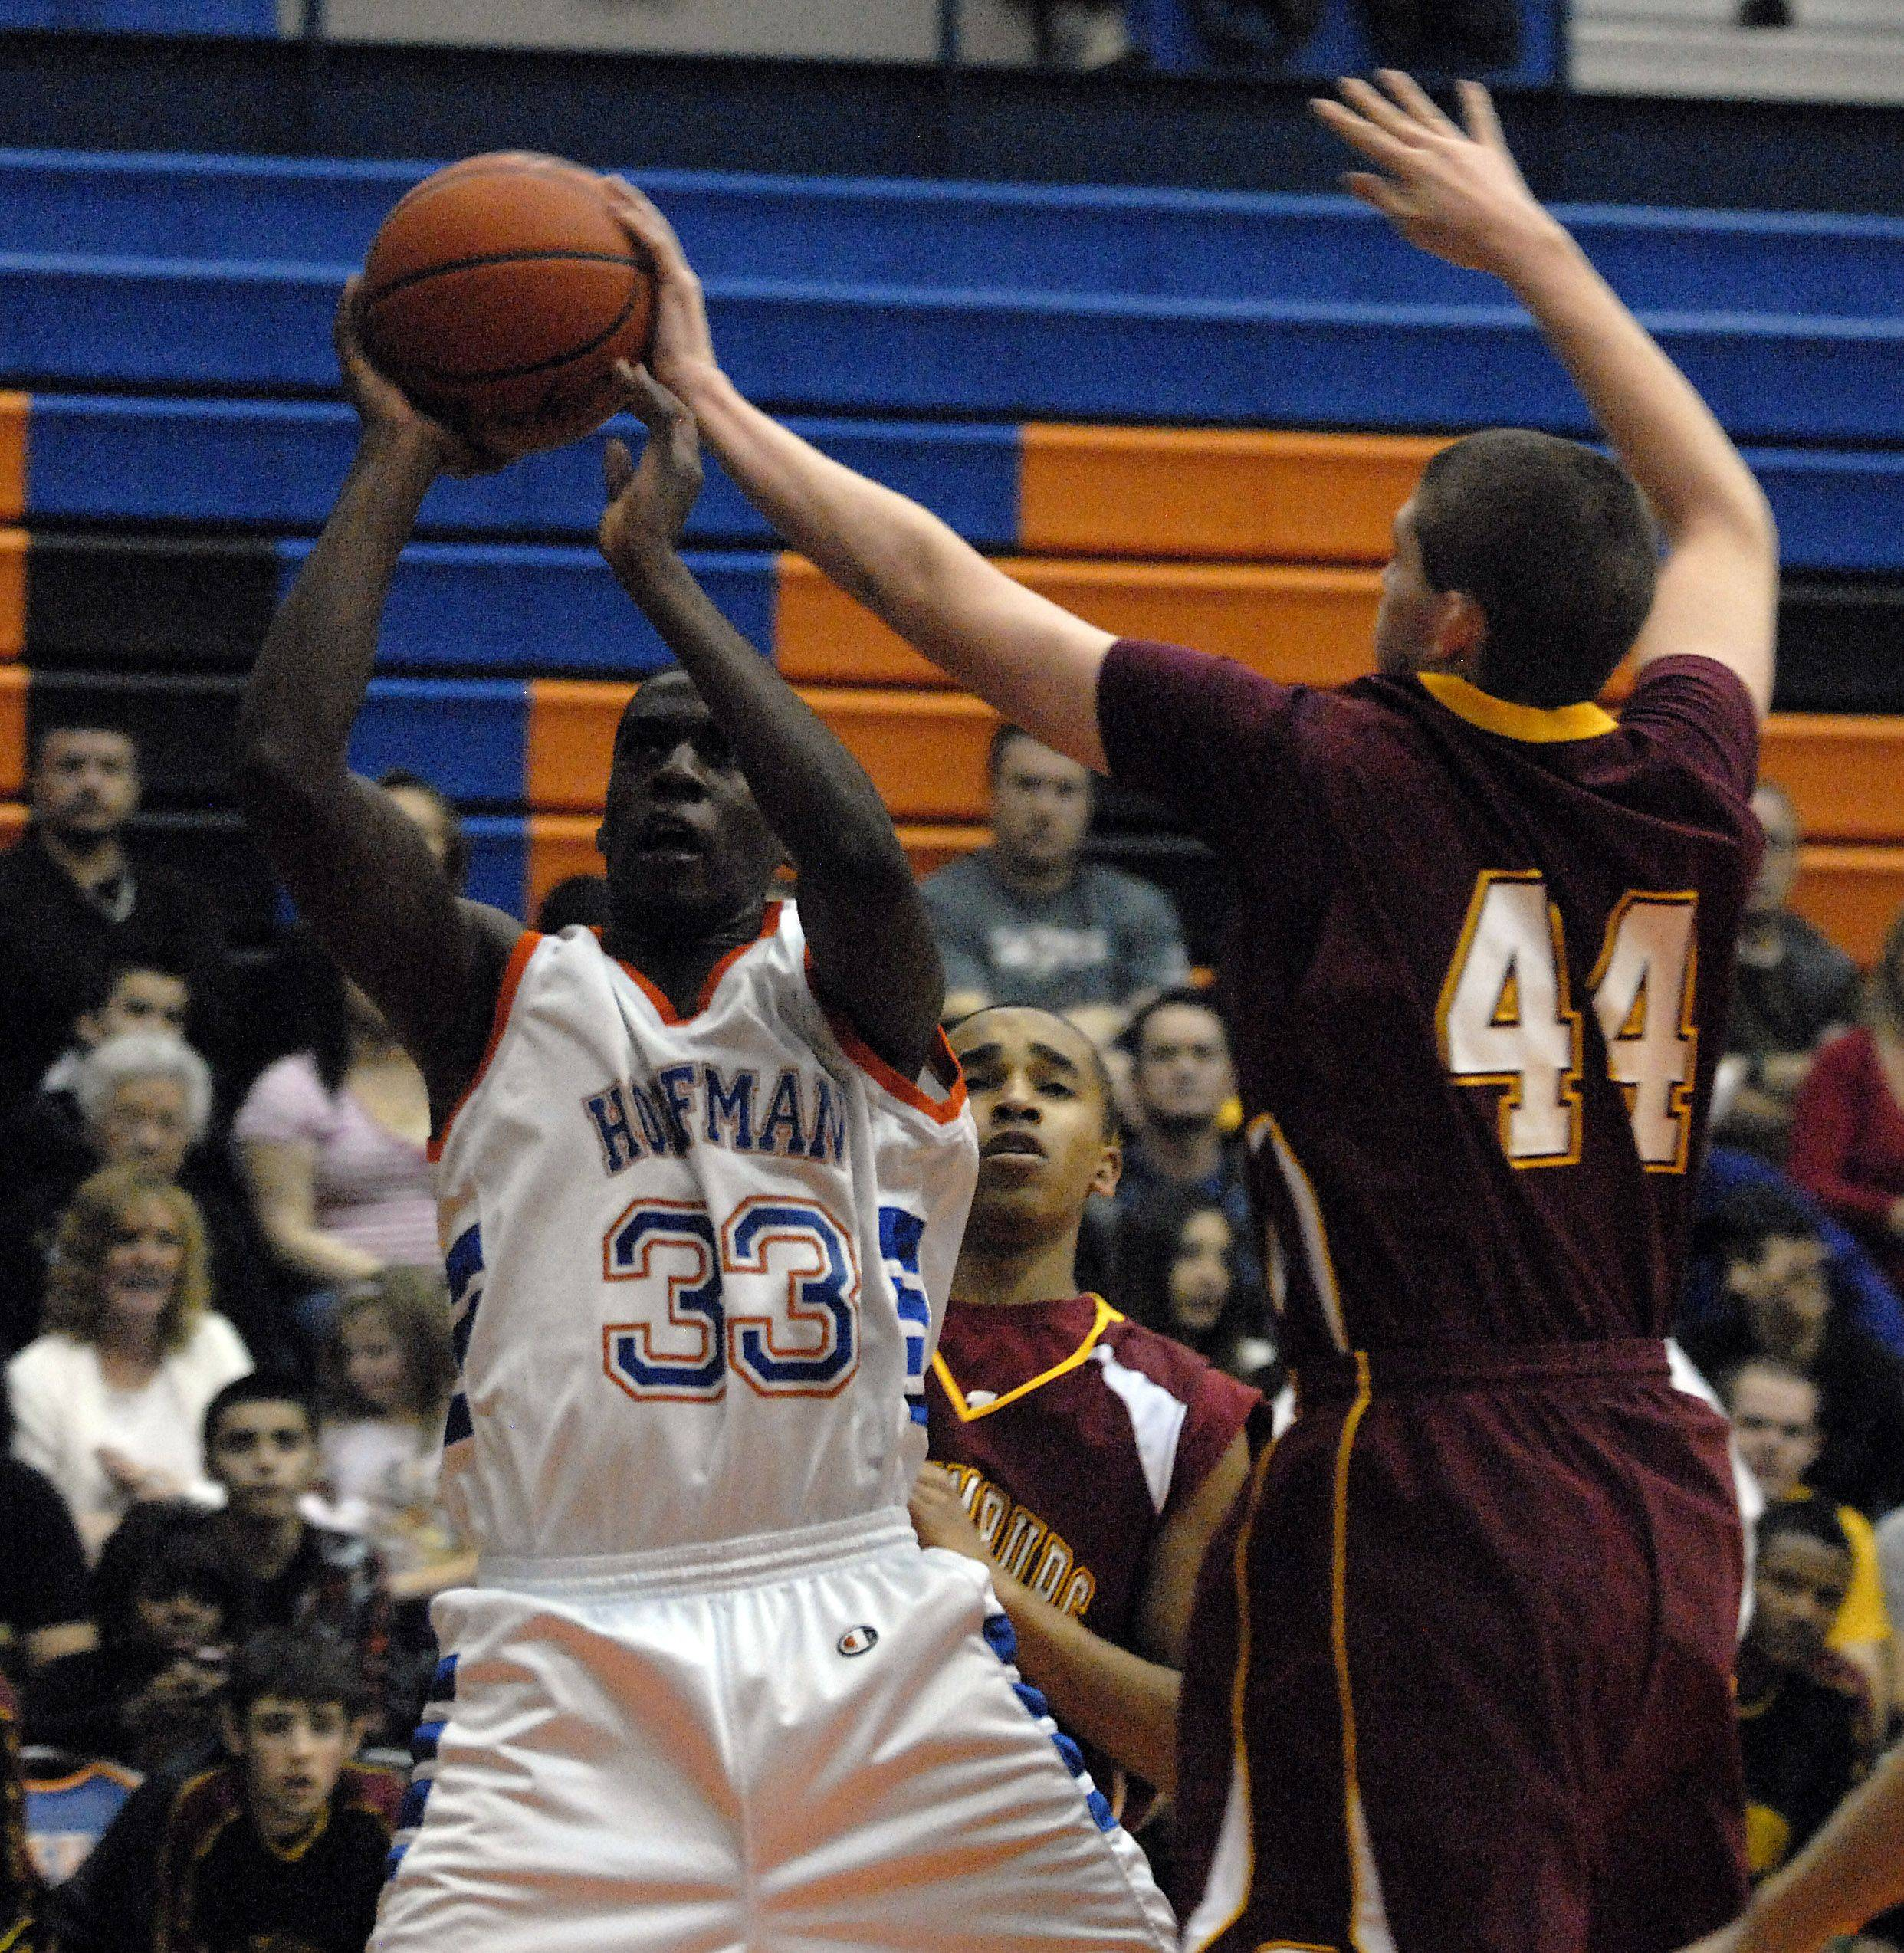 Schaumburg's Jimmy Lundquist goes against Hoffman Estates' Austin Terry in the first half.